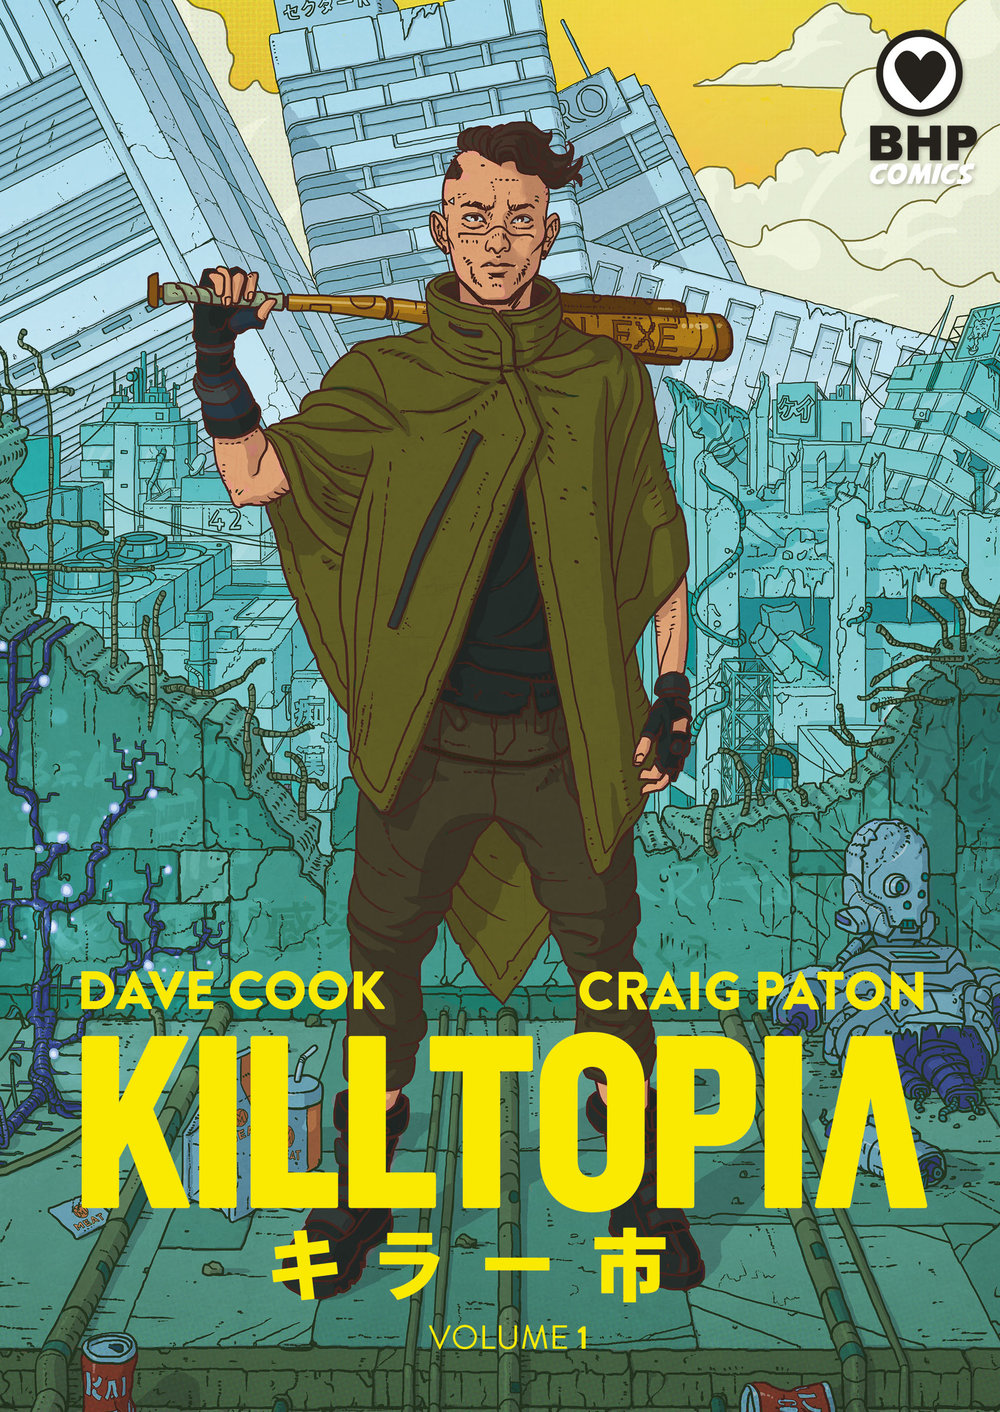 KILLTOPIA hits the shops - KILLTOPIA's big release day is here! Your pre-orders are in the post and the books are in the shops! You can get your copy directly from us (help an indie publisher out) or from amazon, Waterstones or your local comic store!'A slam dunk' Geek Native'an exciting and innovative indie comic' PipeDream'There is nothing here that fails to impress.' Tripwire''more than worthy of taking its place alongside the litany of classics that inspired it.' Starburst